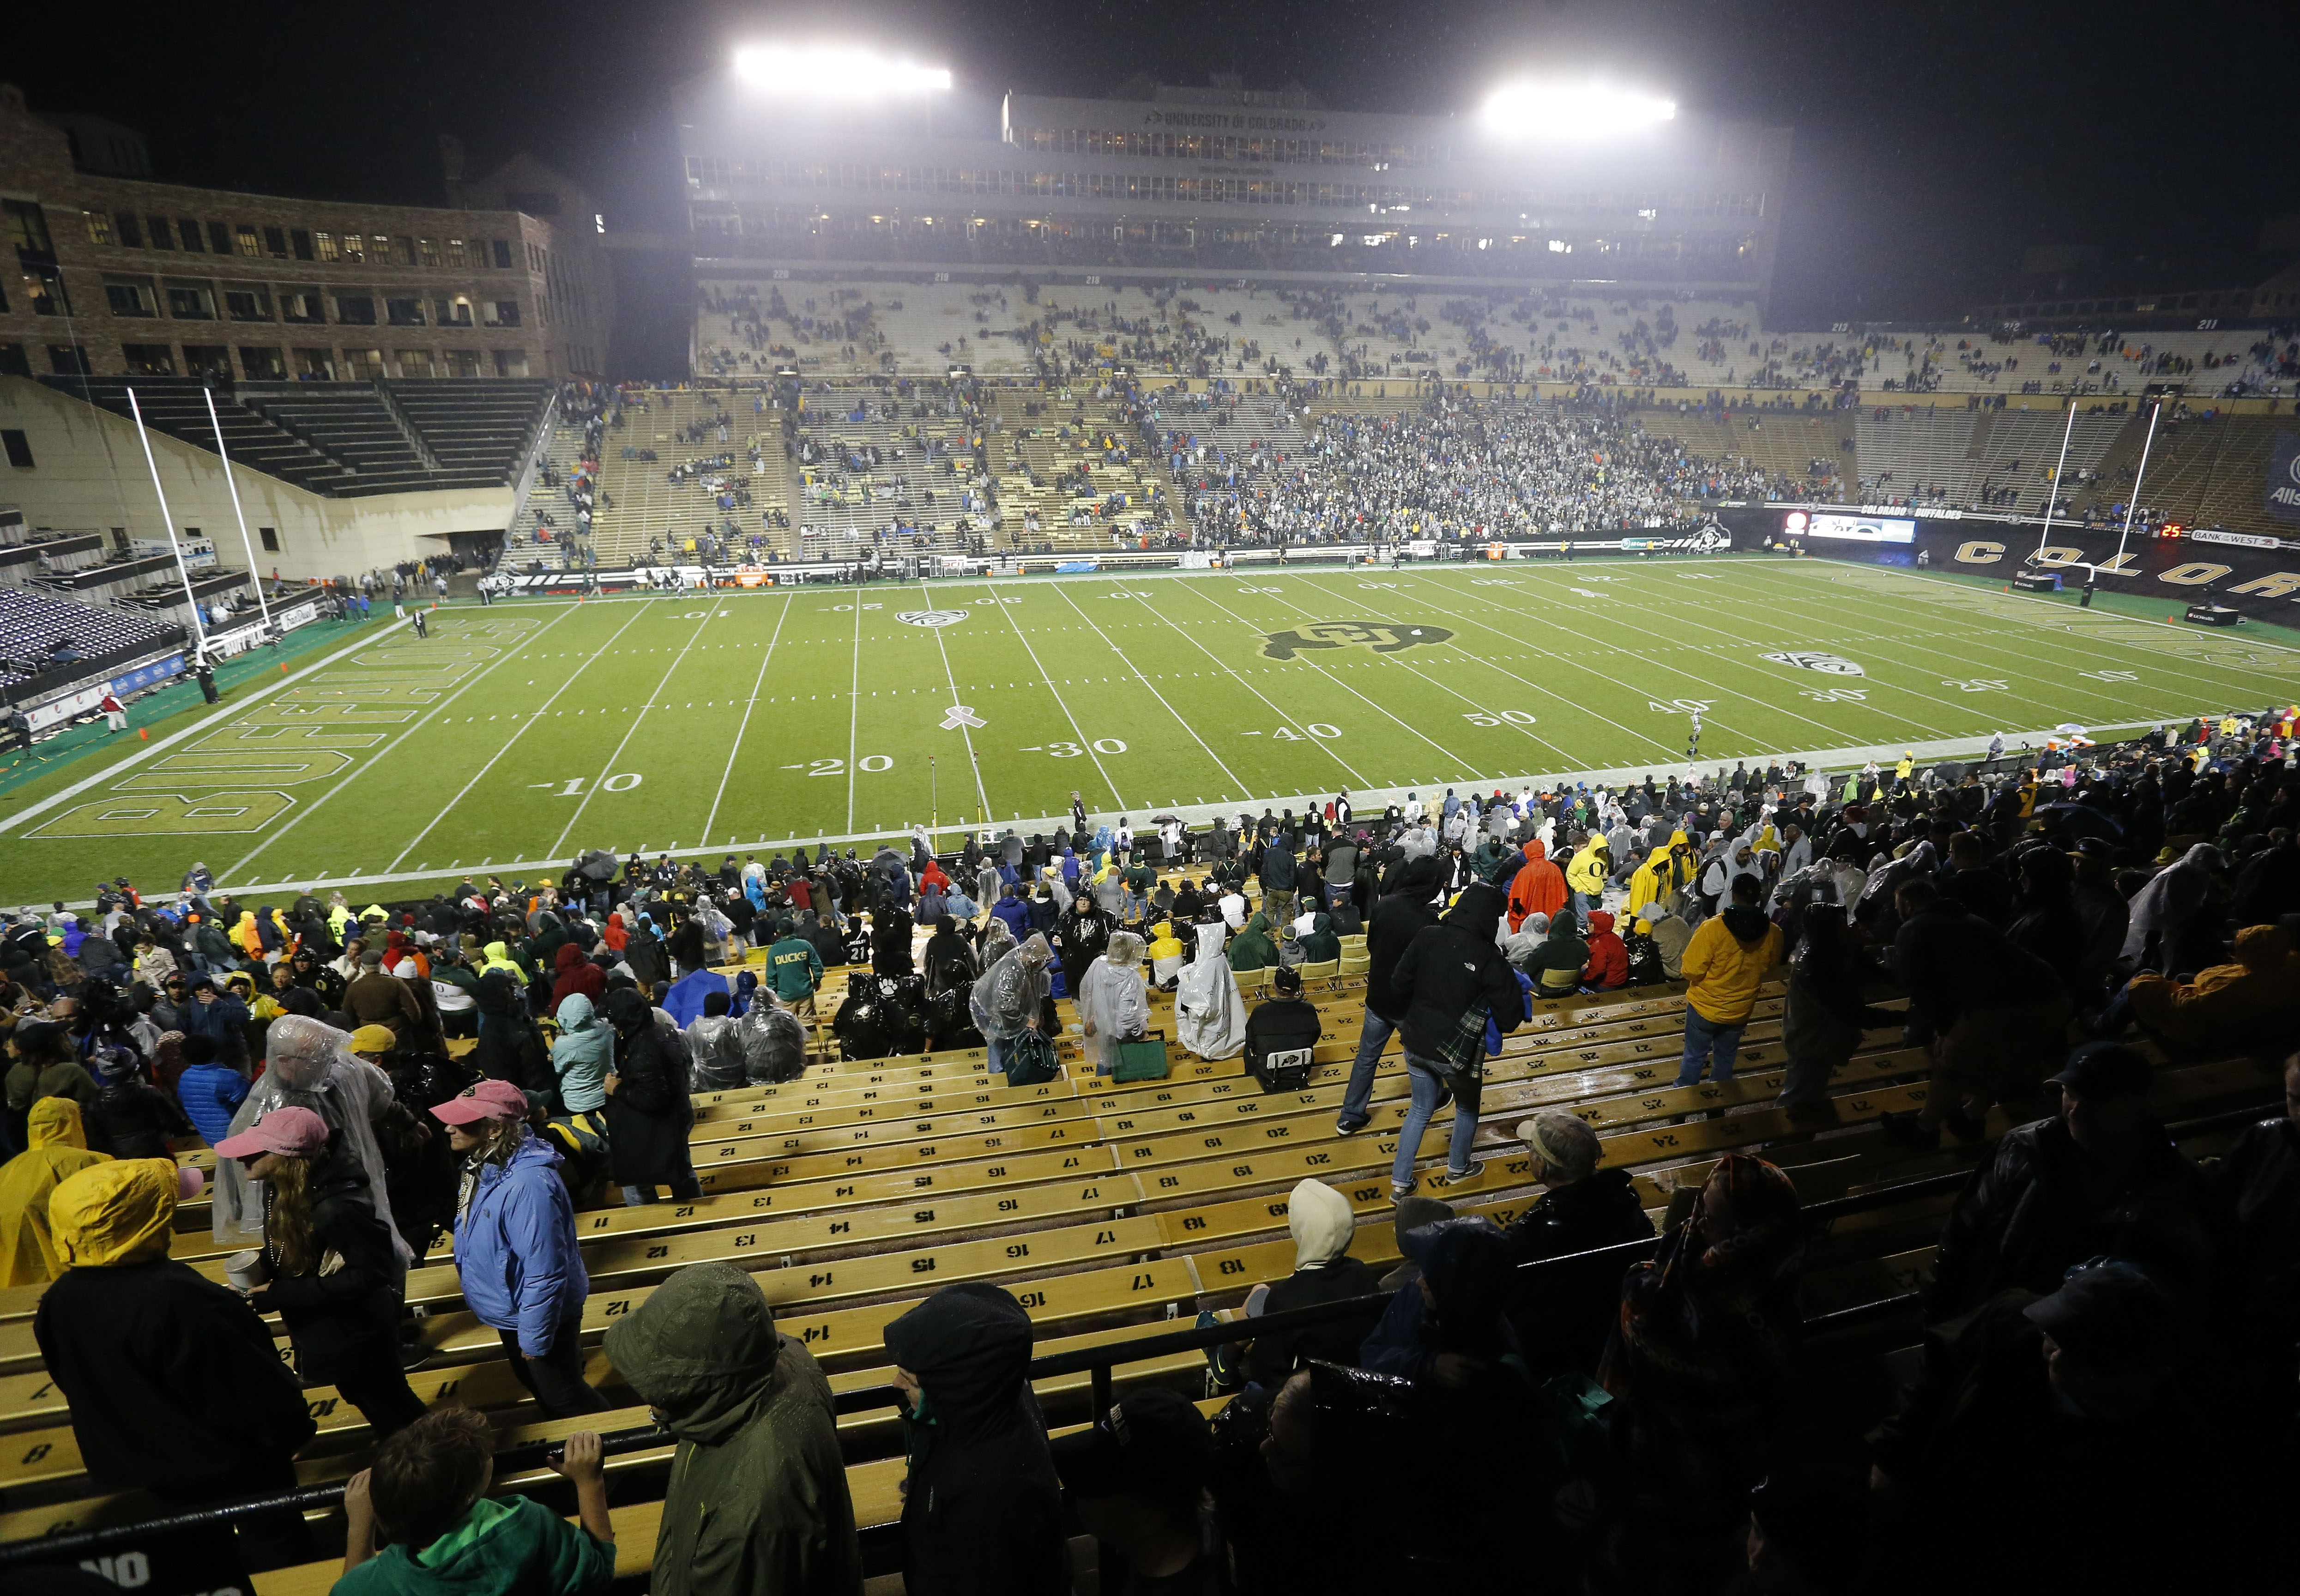 Colorado and Oregon football fans wait out multiple weather delays before an NCAA college football game in Boulder, Colo., Saturday, Oct. 3, 2015. (AP Photo/Brennan Linsley)